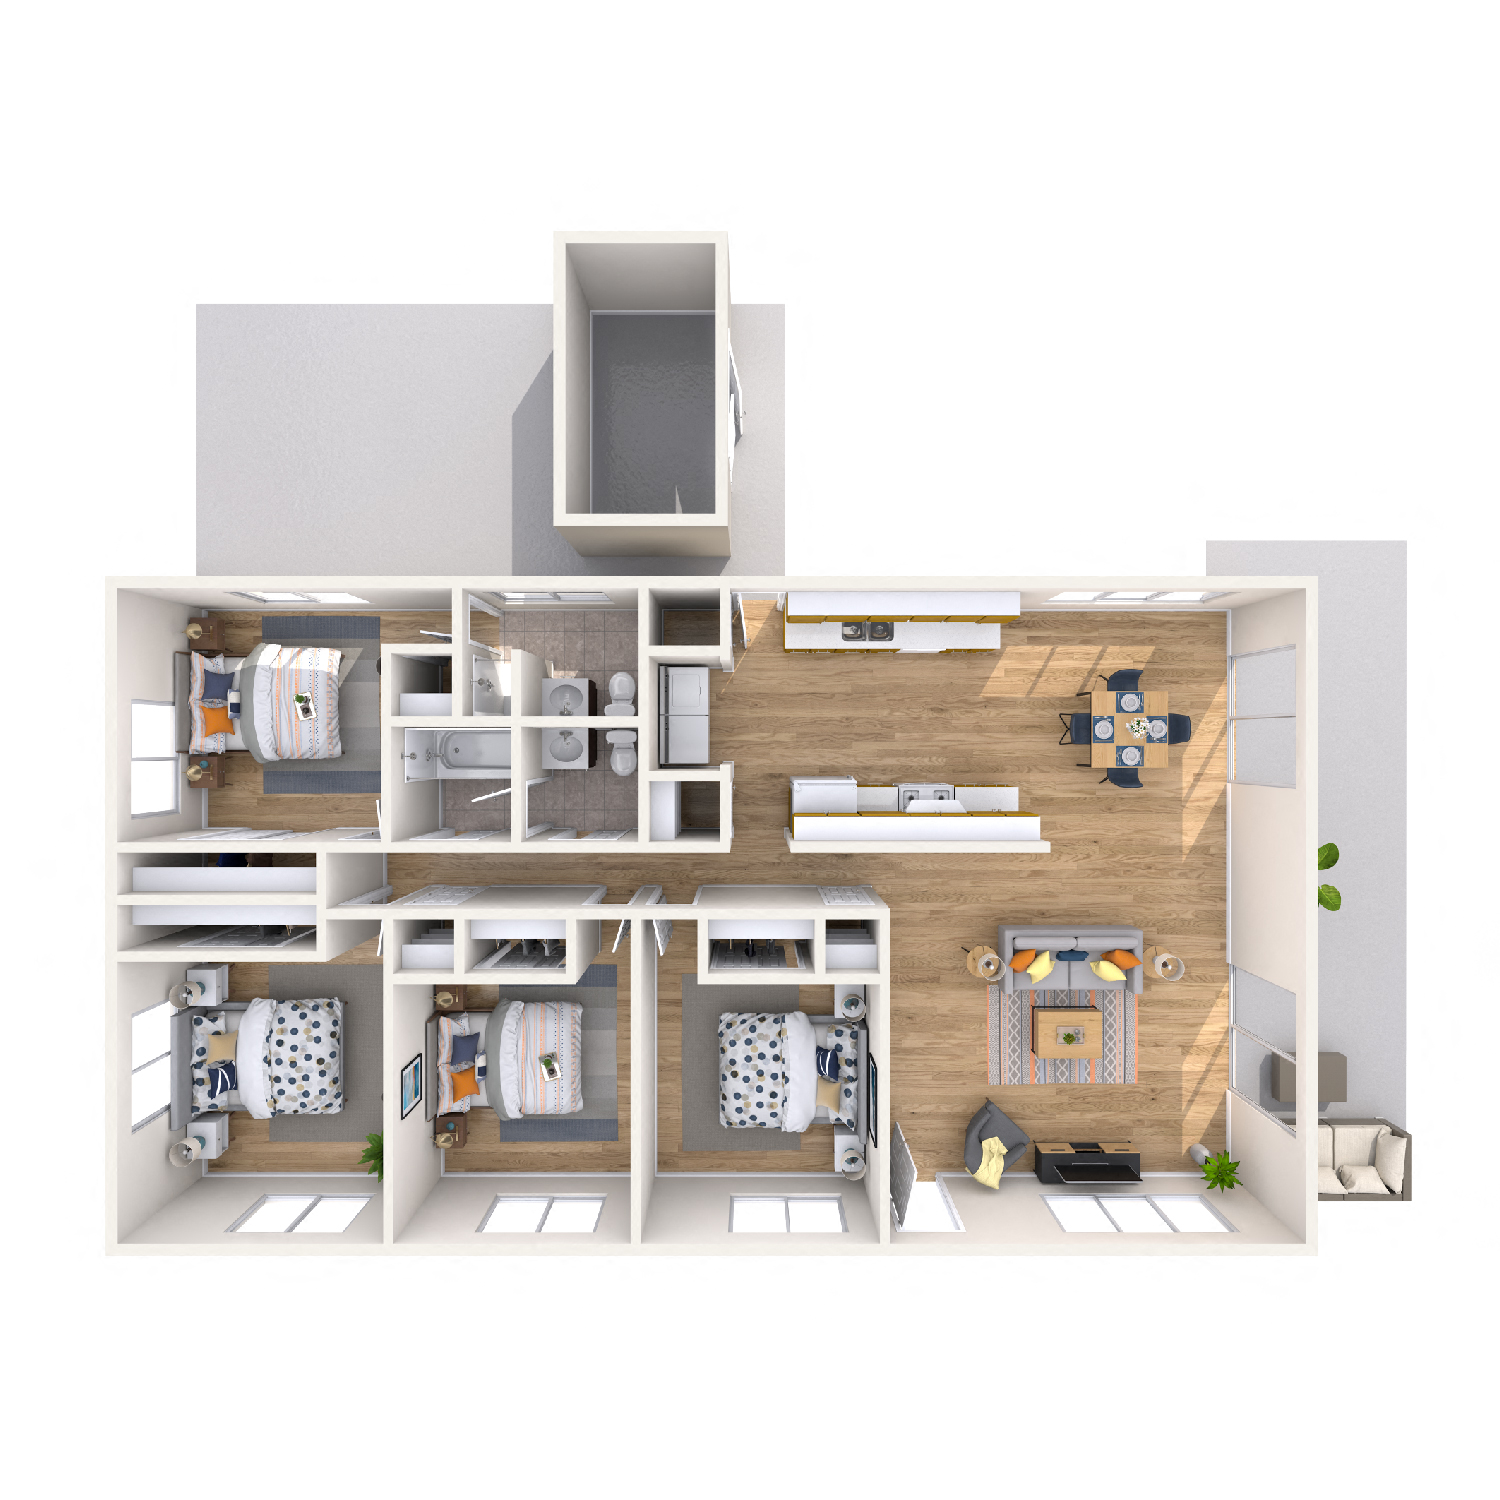 Orchid diagram - 4 bedroom 2 bath apt floorplan